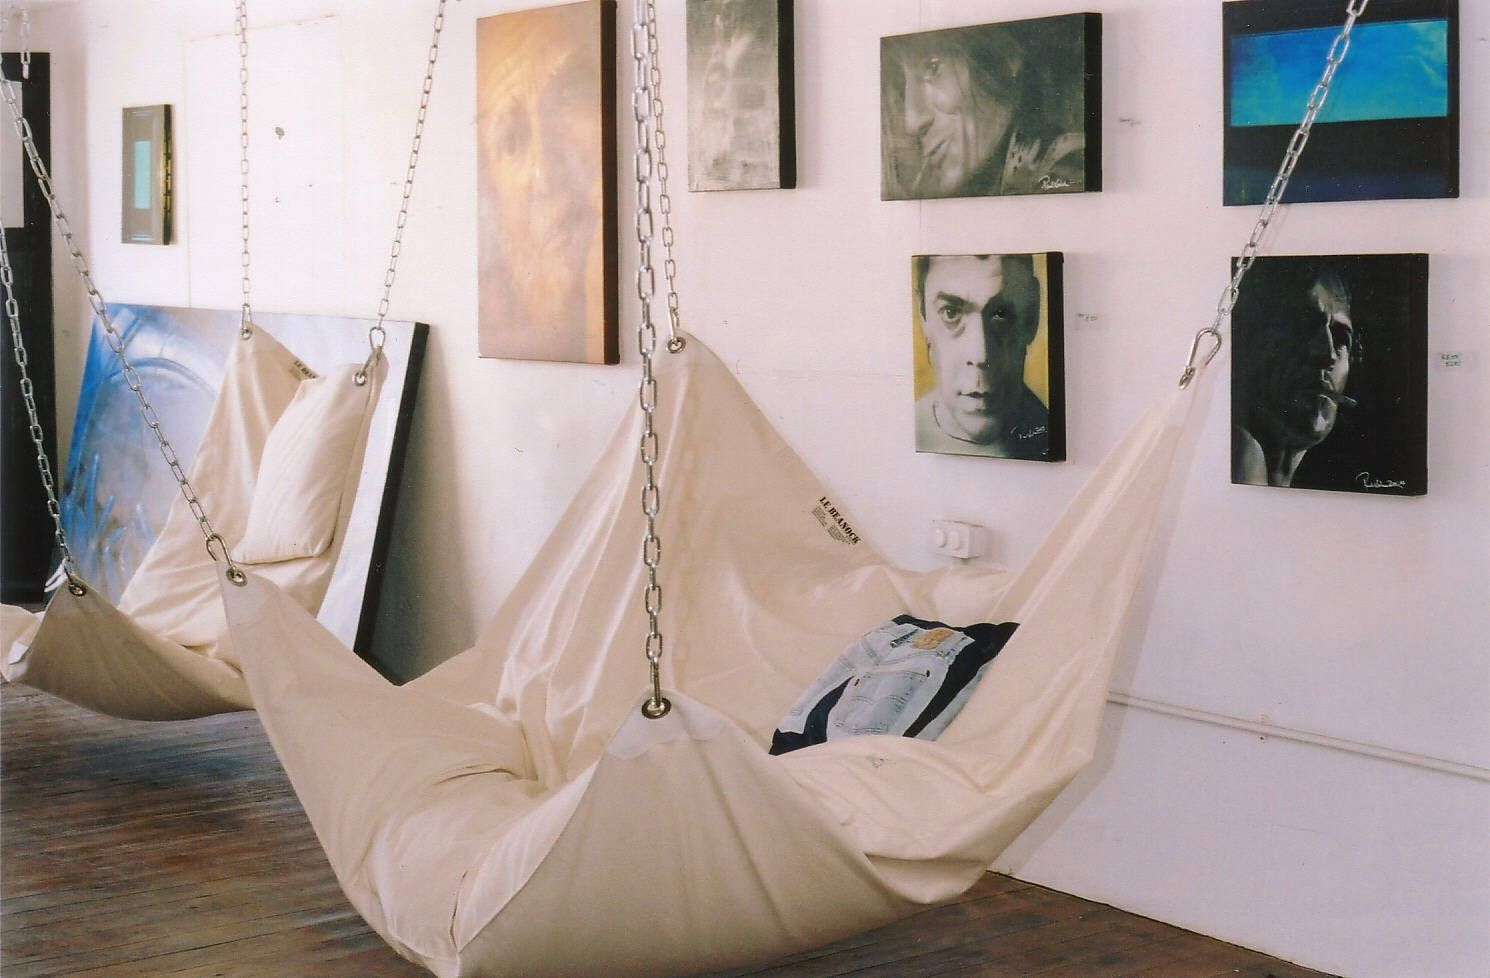 This hammock is designed by great artisans which makes it very ...